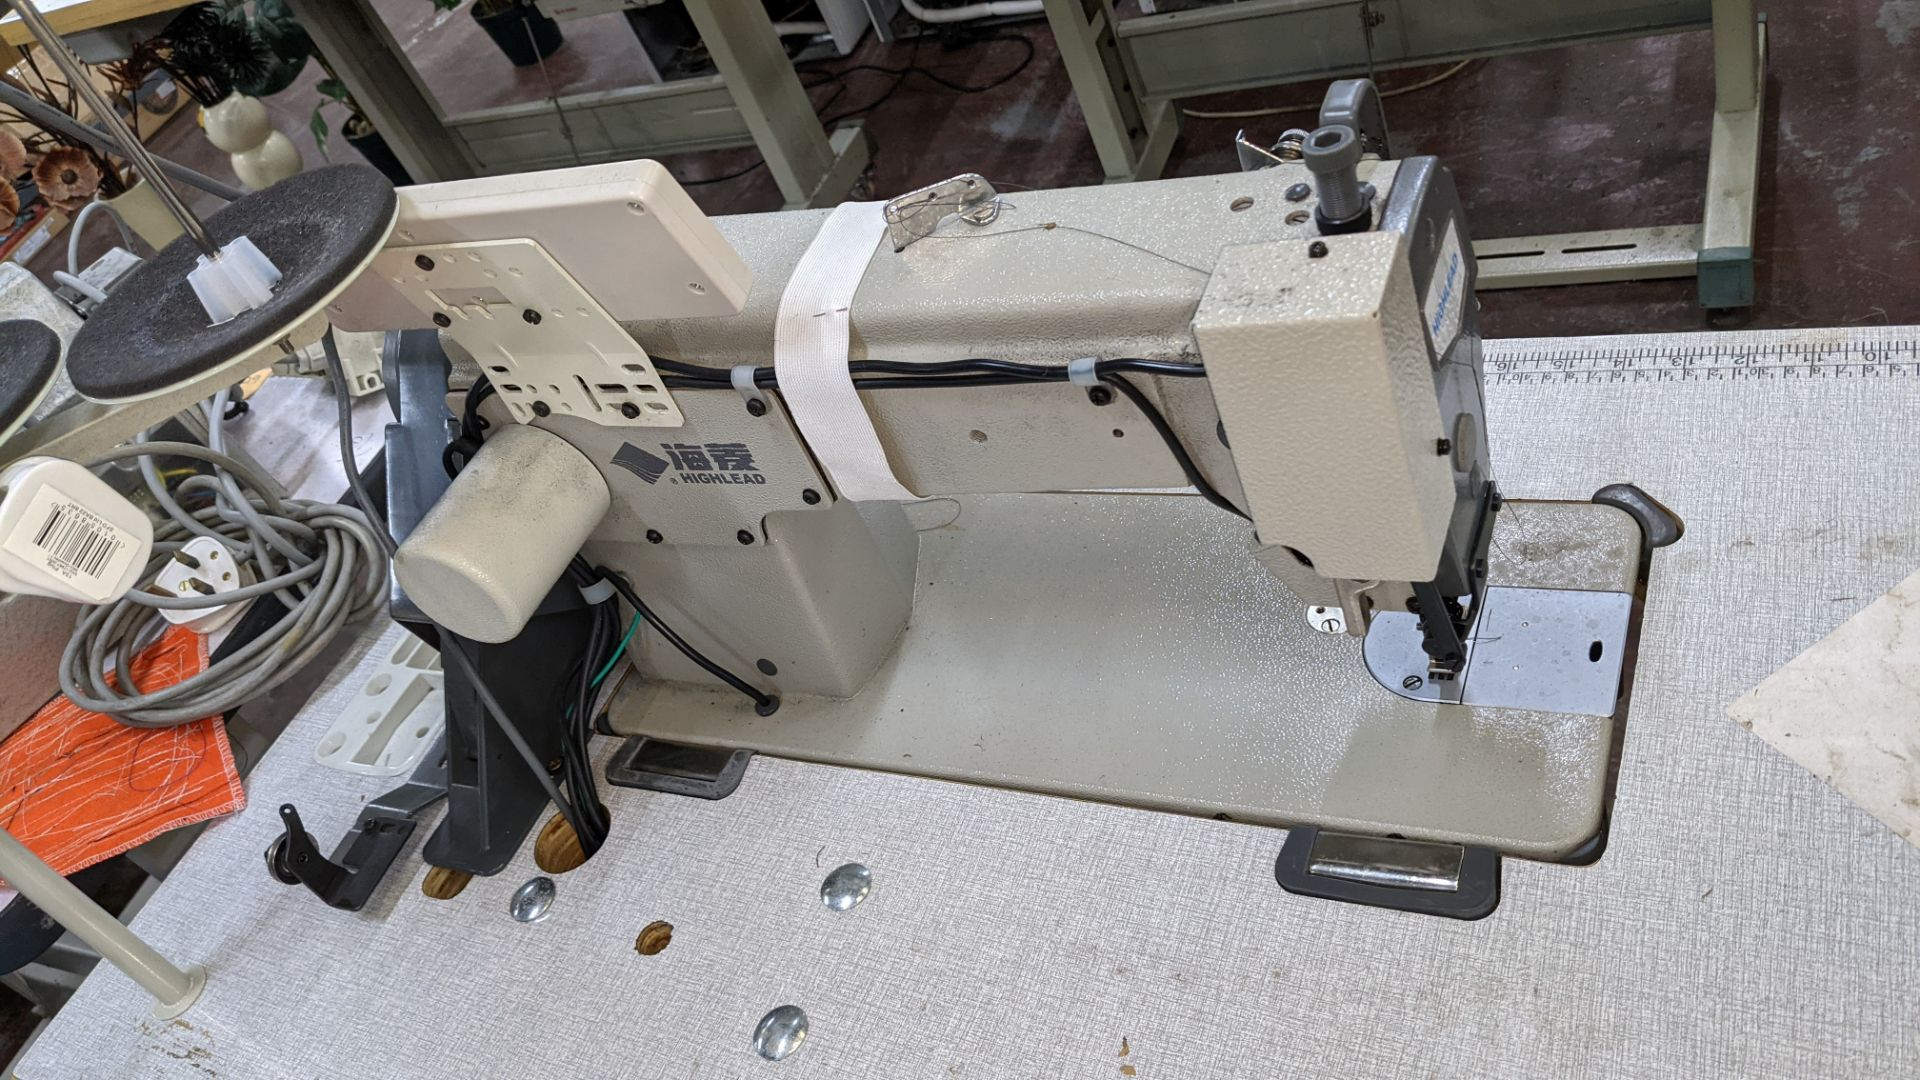 Highlead model GC128-M-D3 sewing machine - Image 13 of 18